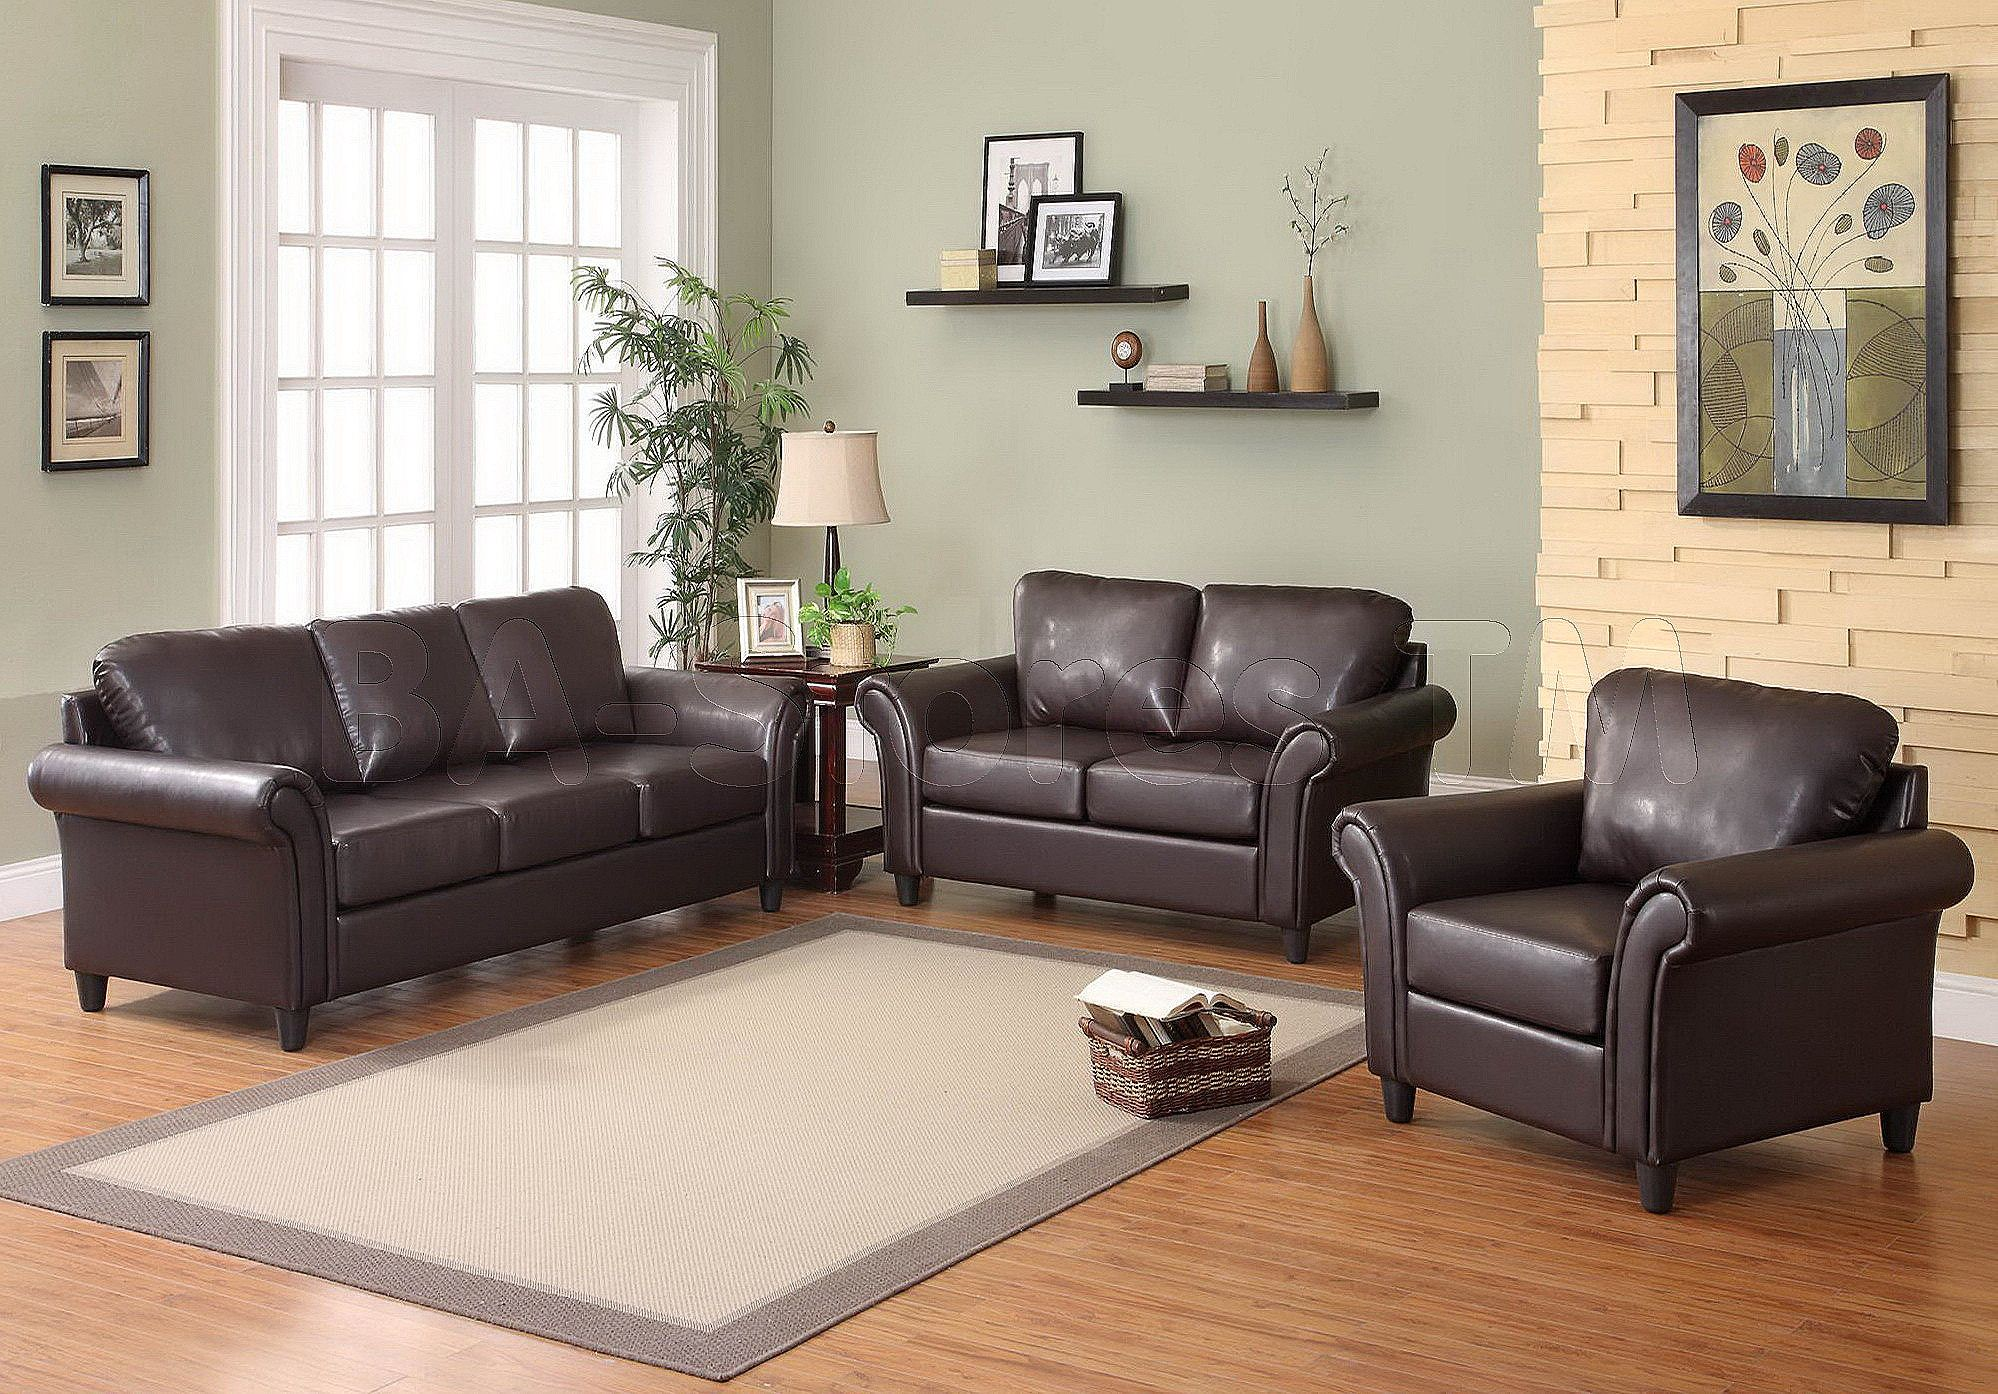 Living Room With Brown Couch, Dark Brown Couch Living Room Design